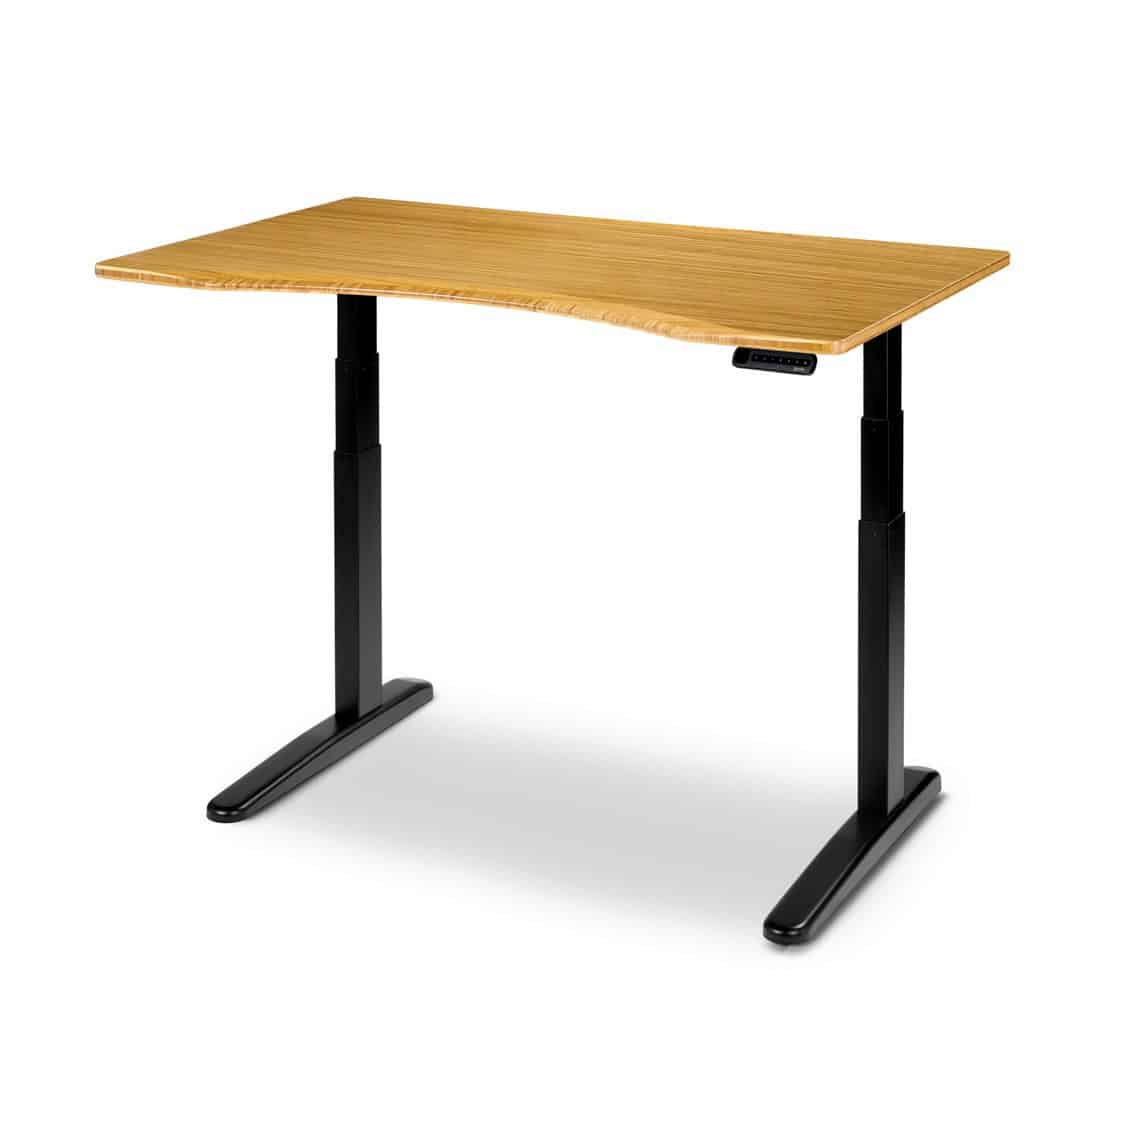 A photo of the Ergo Depot Jarvis Bamboo Adjustable Height Desk.